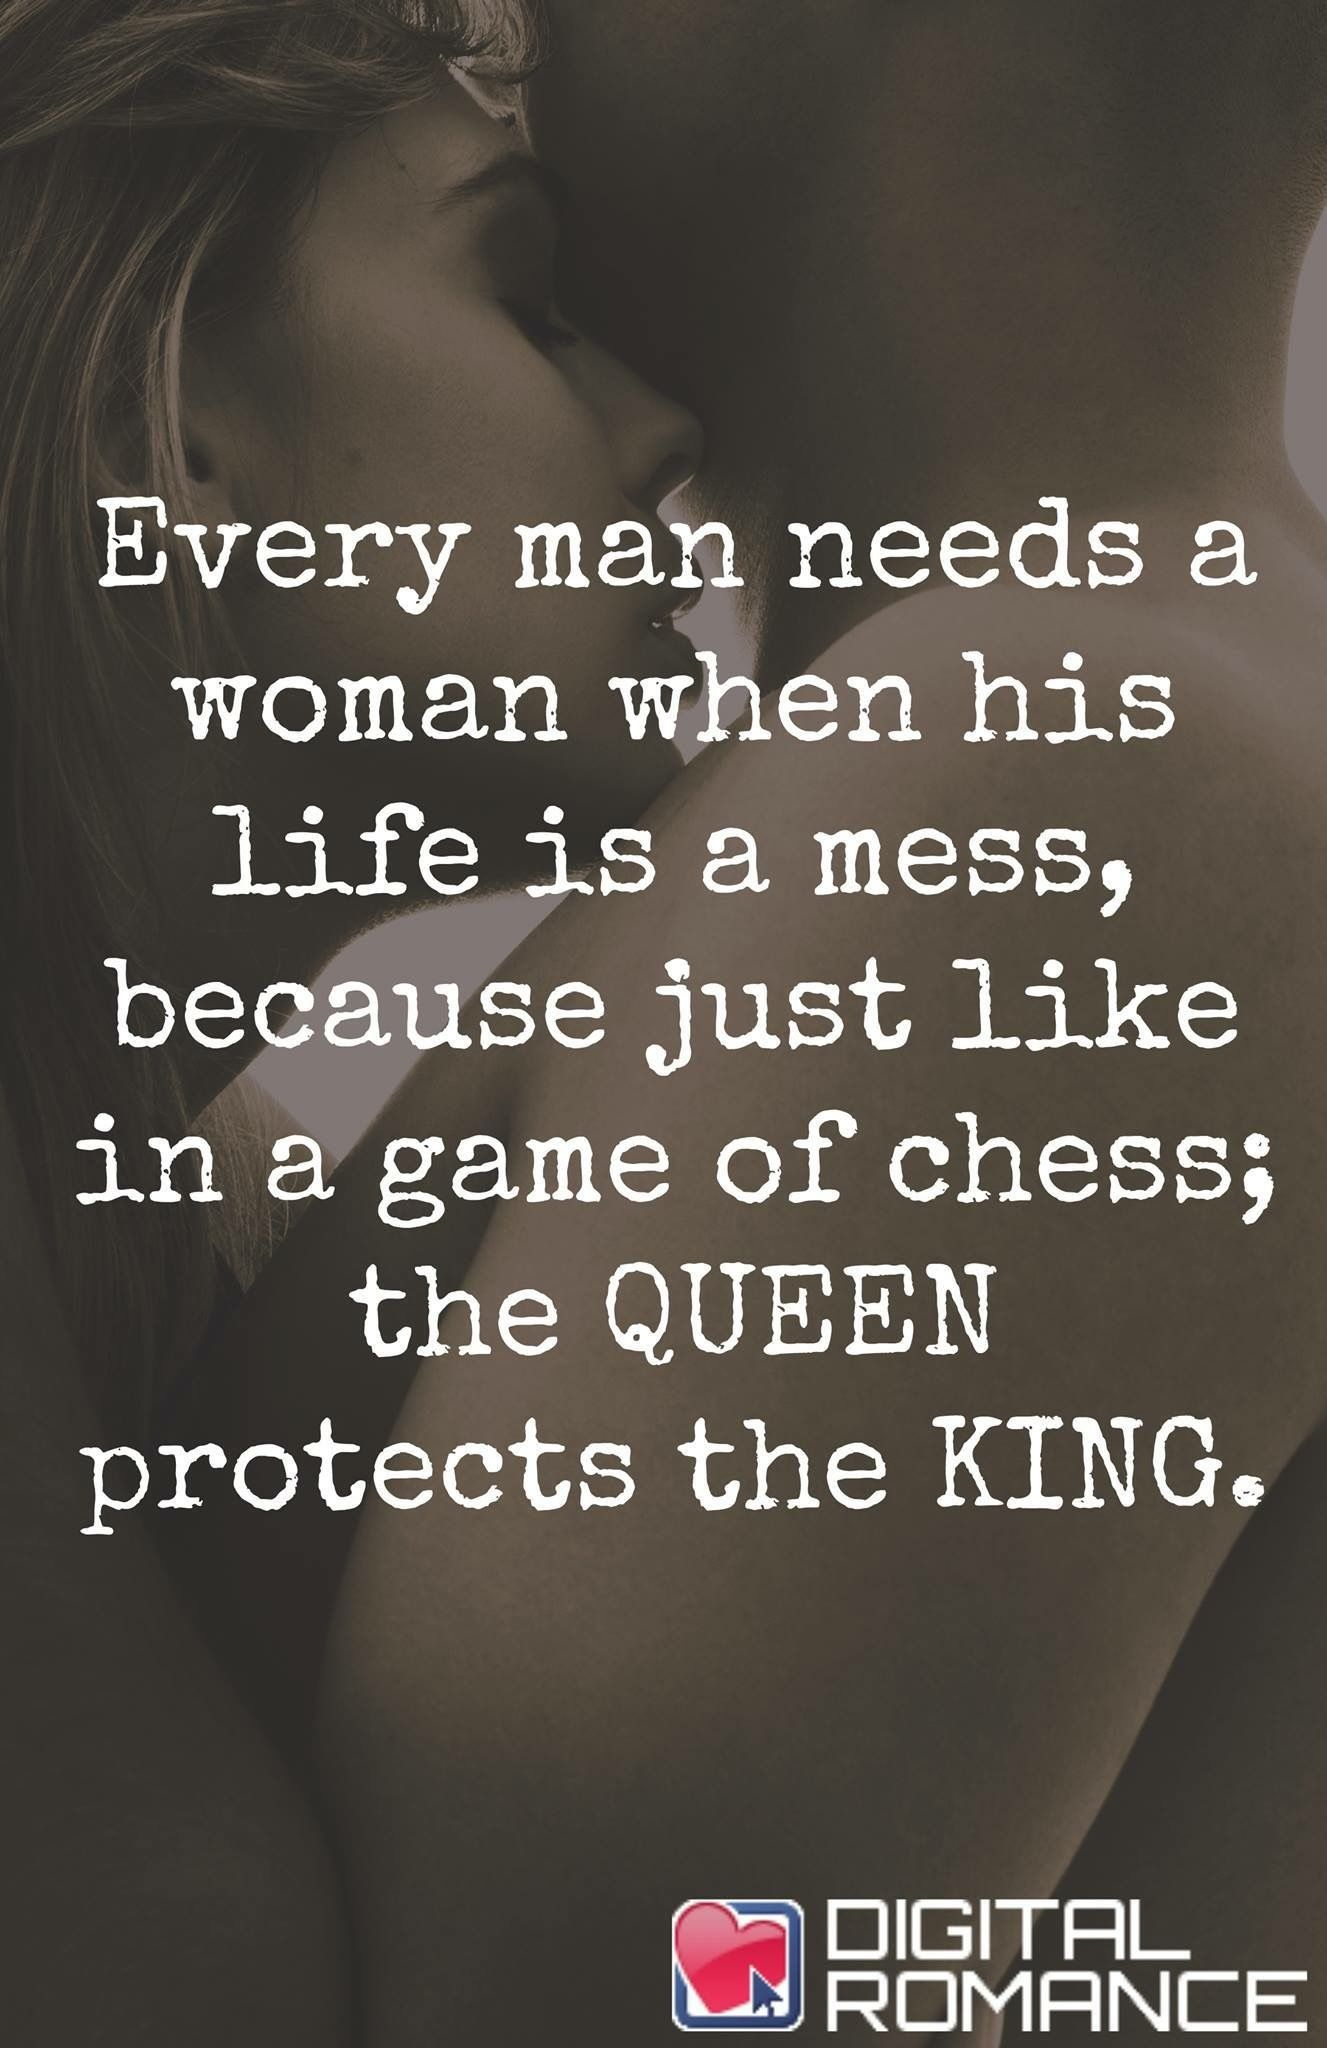 King And Queen Love Quotes Pincarmen Padin On Quotes  Pinterest  Relationships